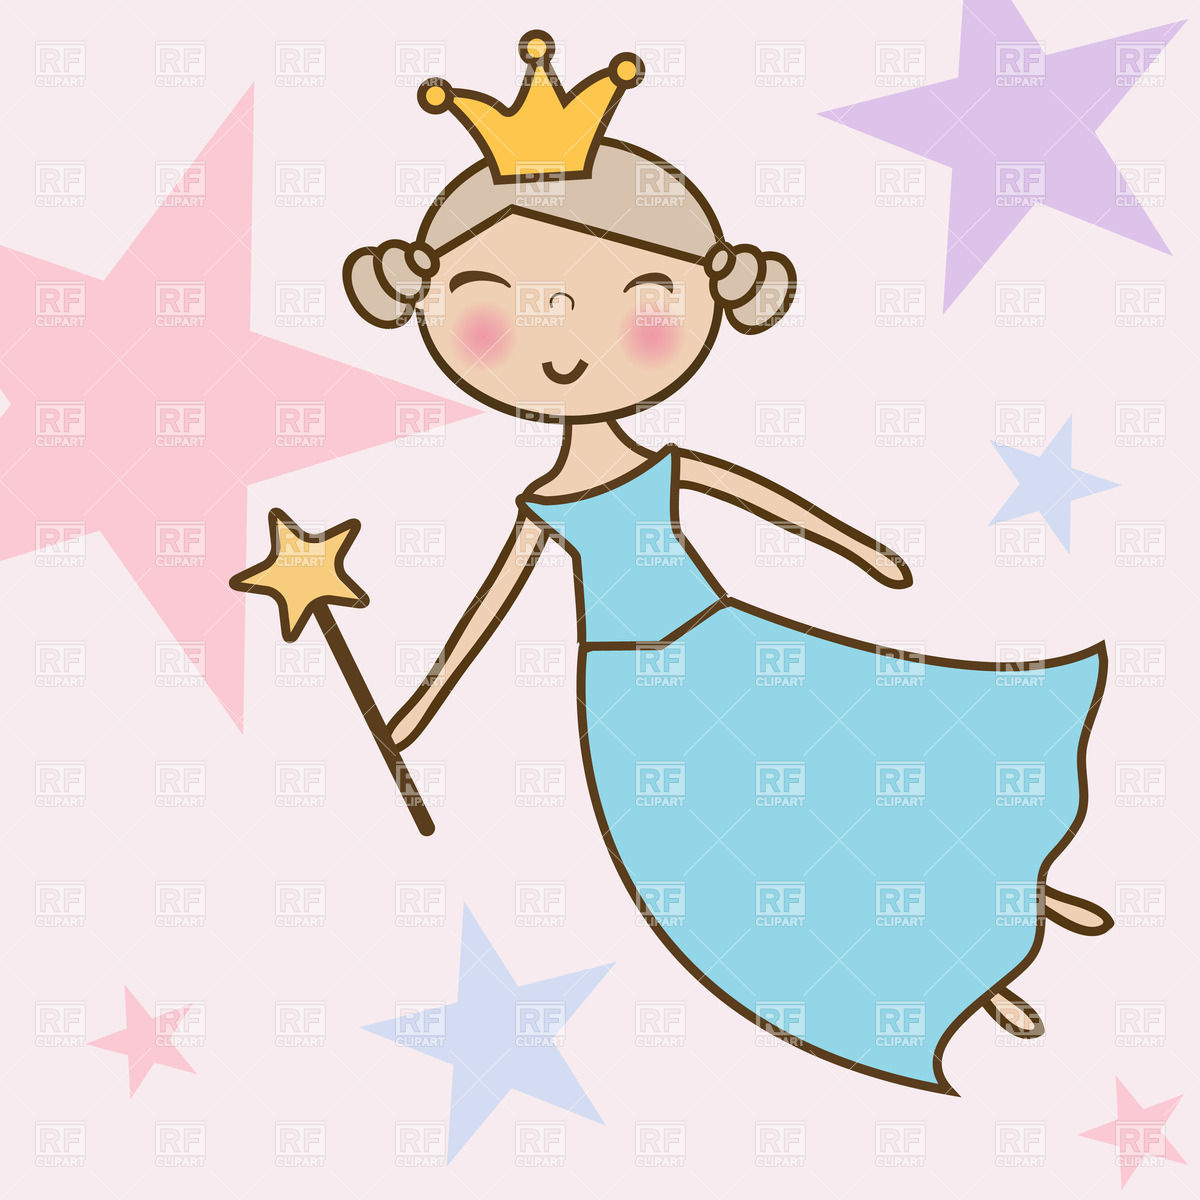 Magic fairy wand clipart clipart kid - Clipartix